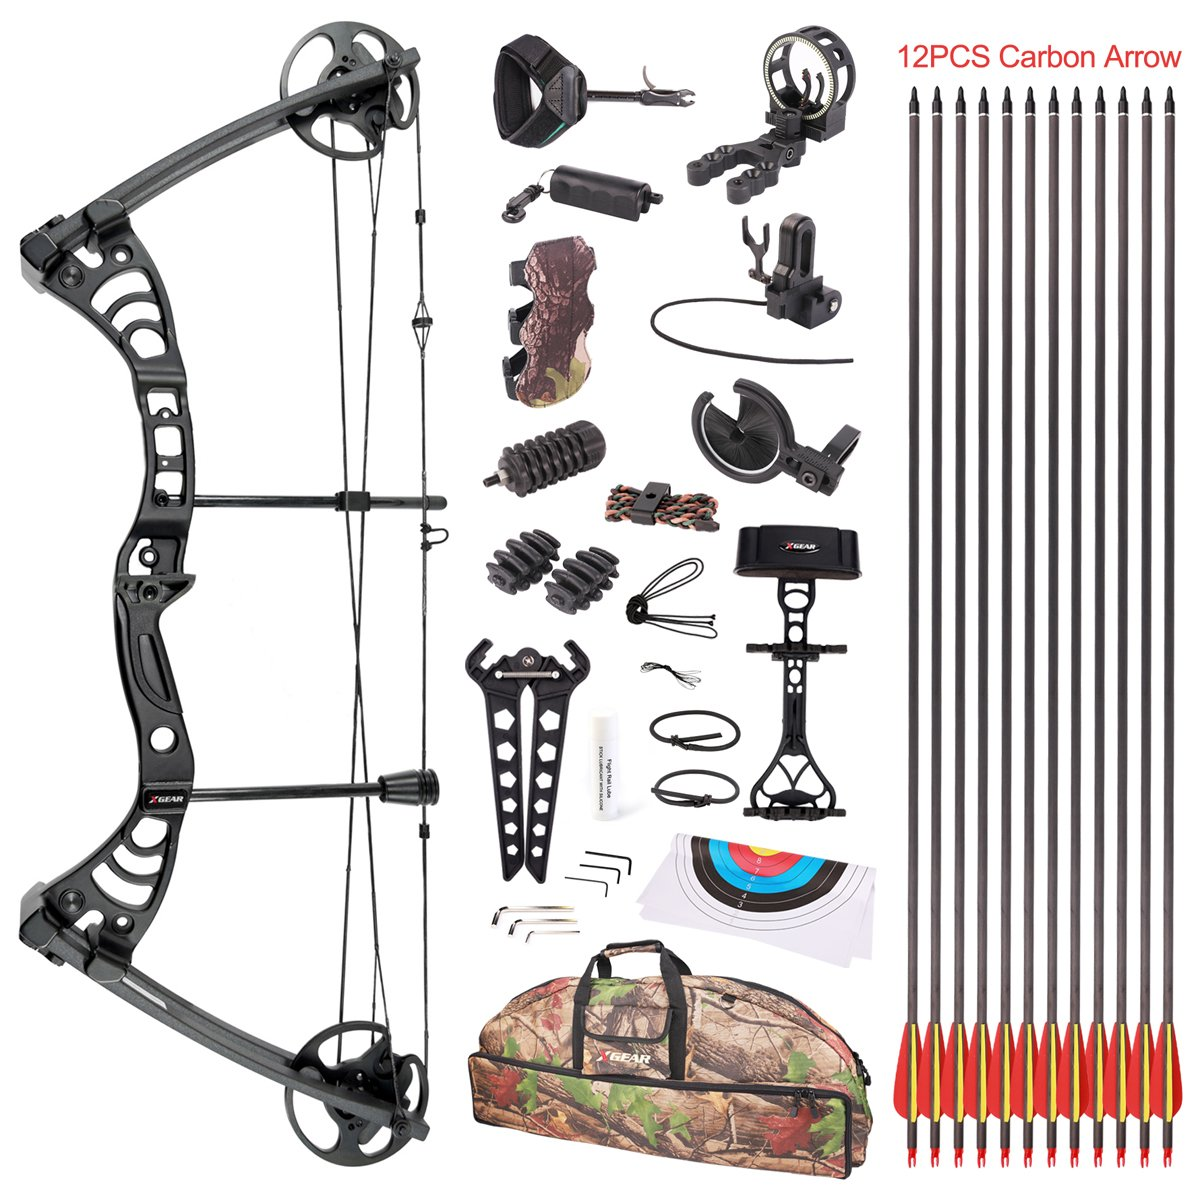 Leader Accessories Compound Bow 30-55lbs Archery Hunting Equipment with Max Speed 296fps (Black With Full Accessories)